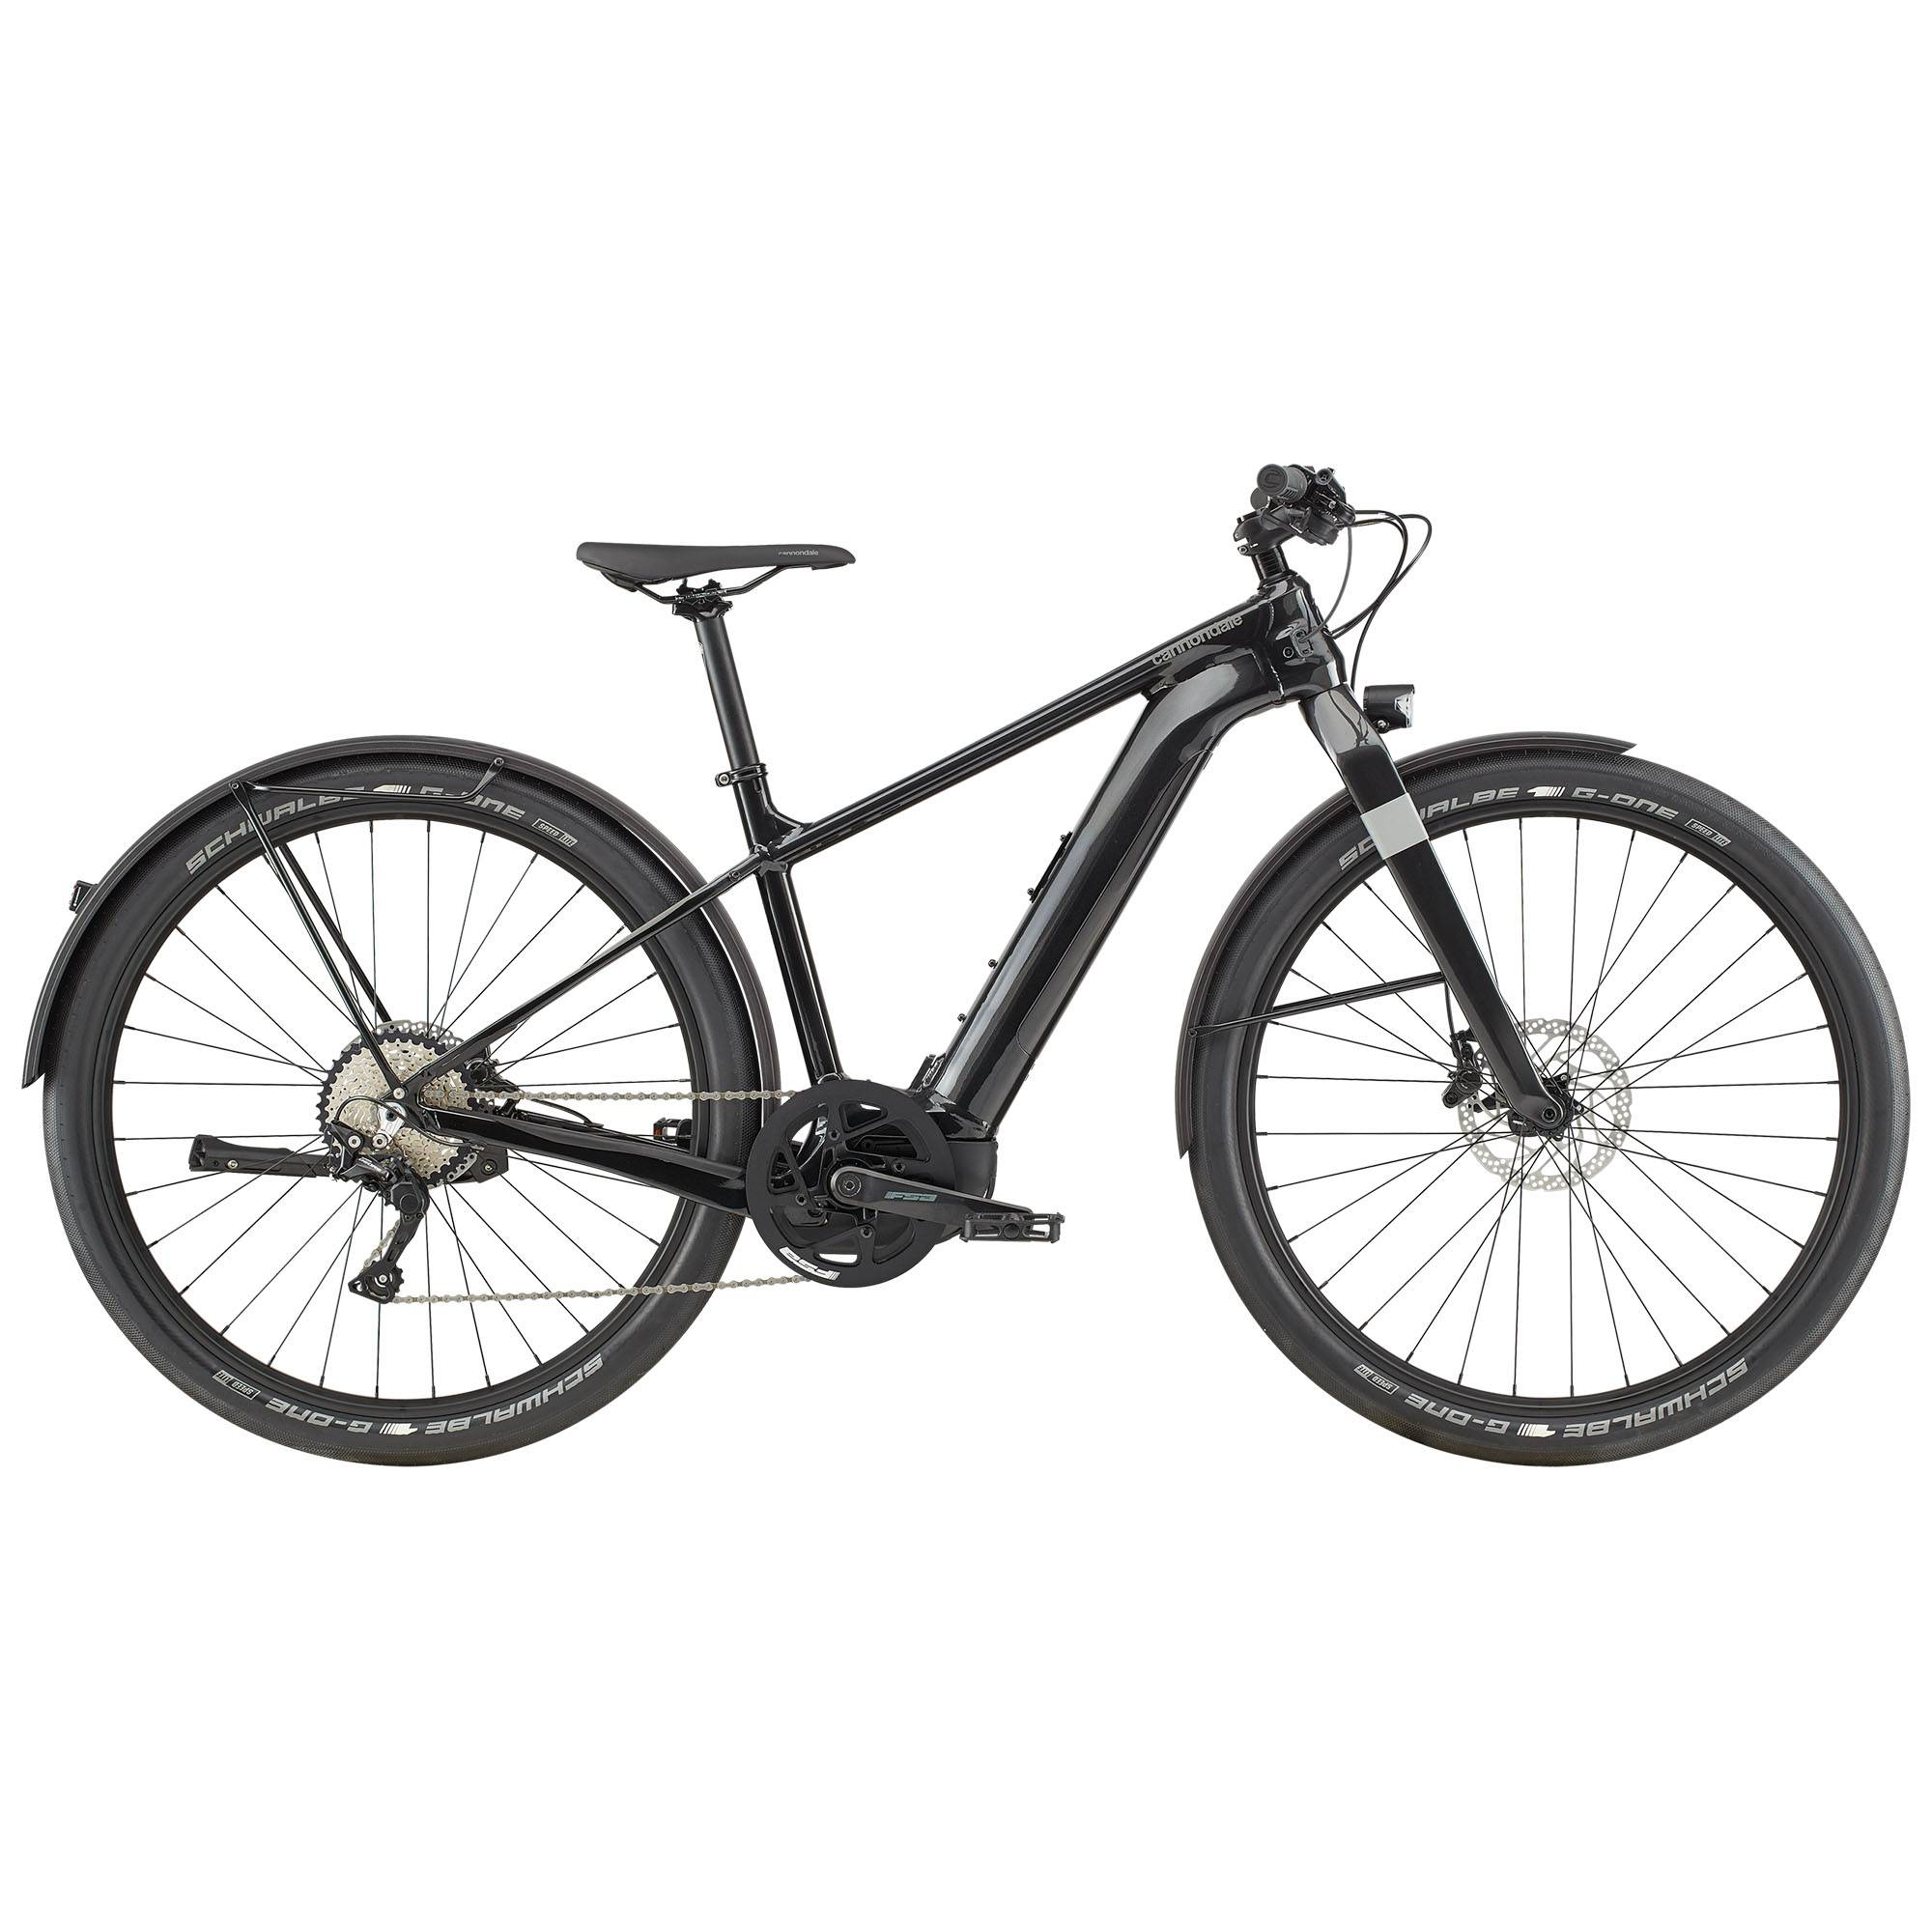 Cannondale Canvas Neo 1 Electric Bike '20  - Black - Size: Medium